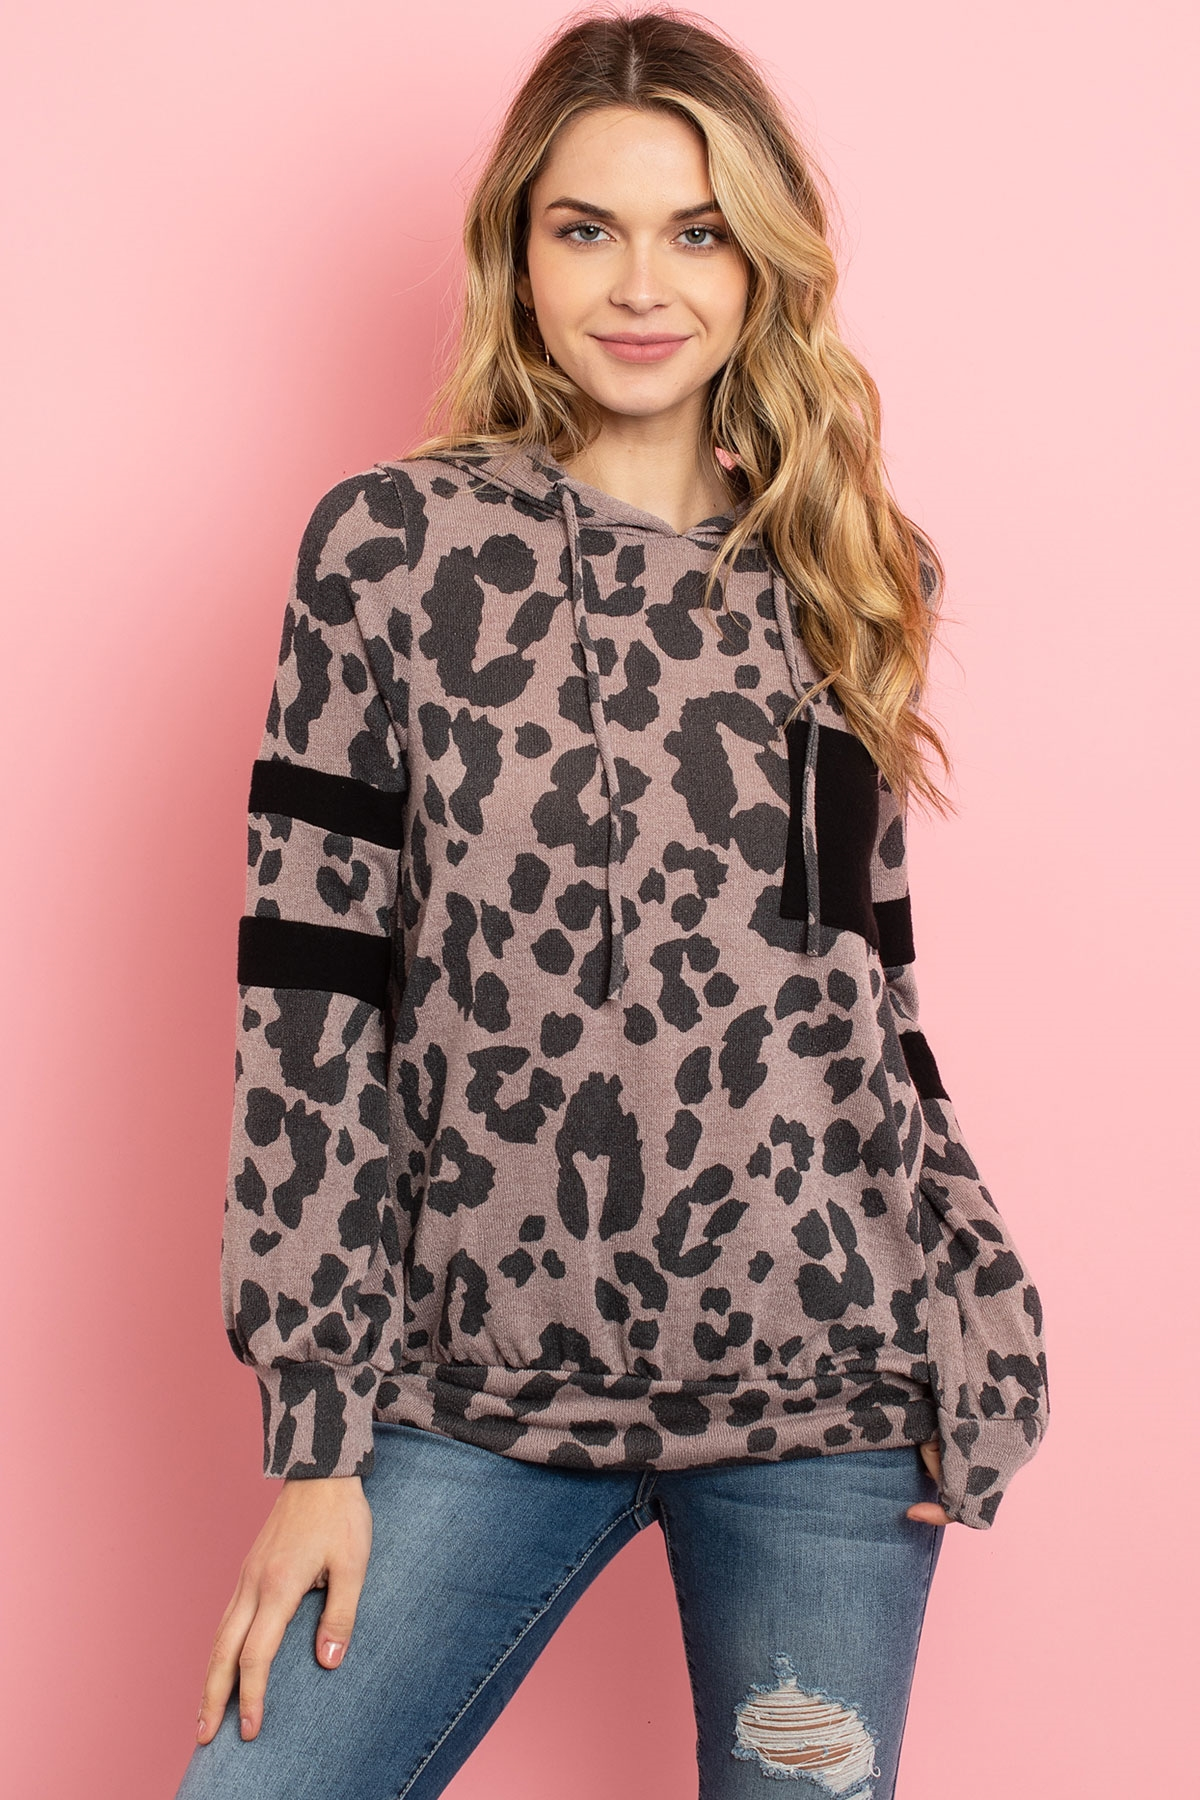 S10-9-3-PPT2019-CCBK - BRUSHED POCKET AND SLEEVED DETAIL LEOPARD PRINT HOODIE- COCO BLACK 1-2-2-2